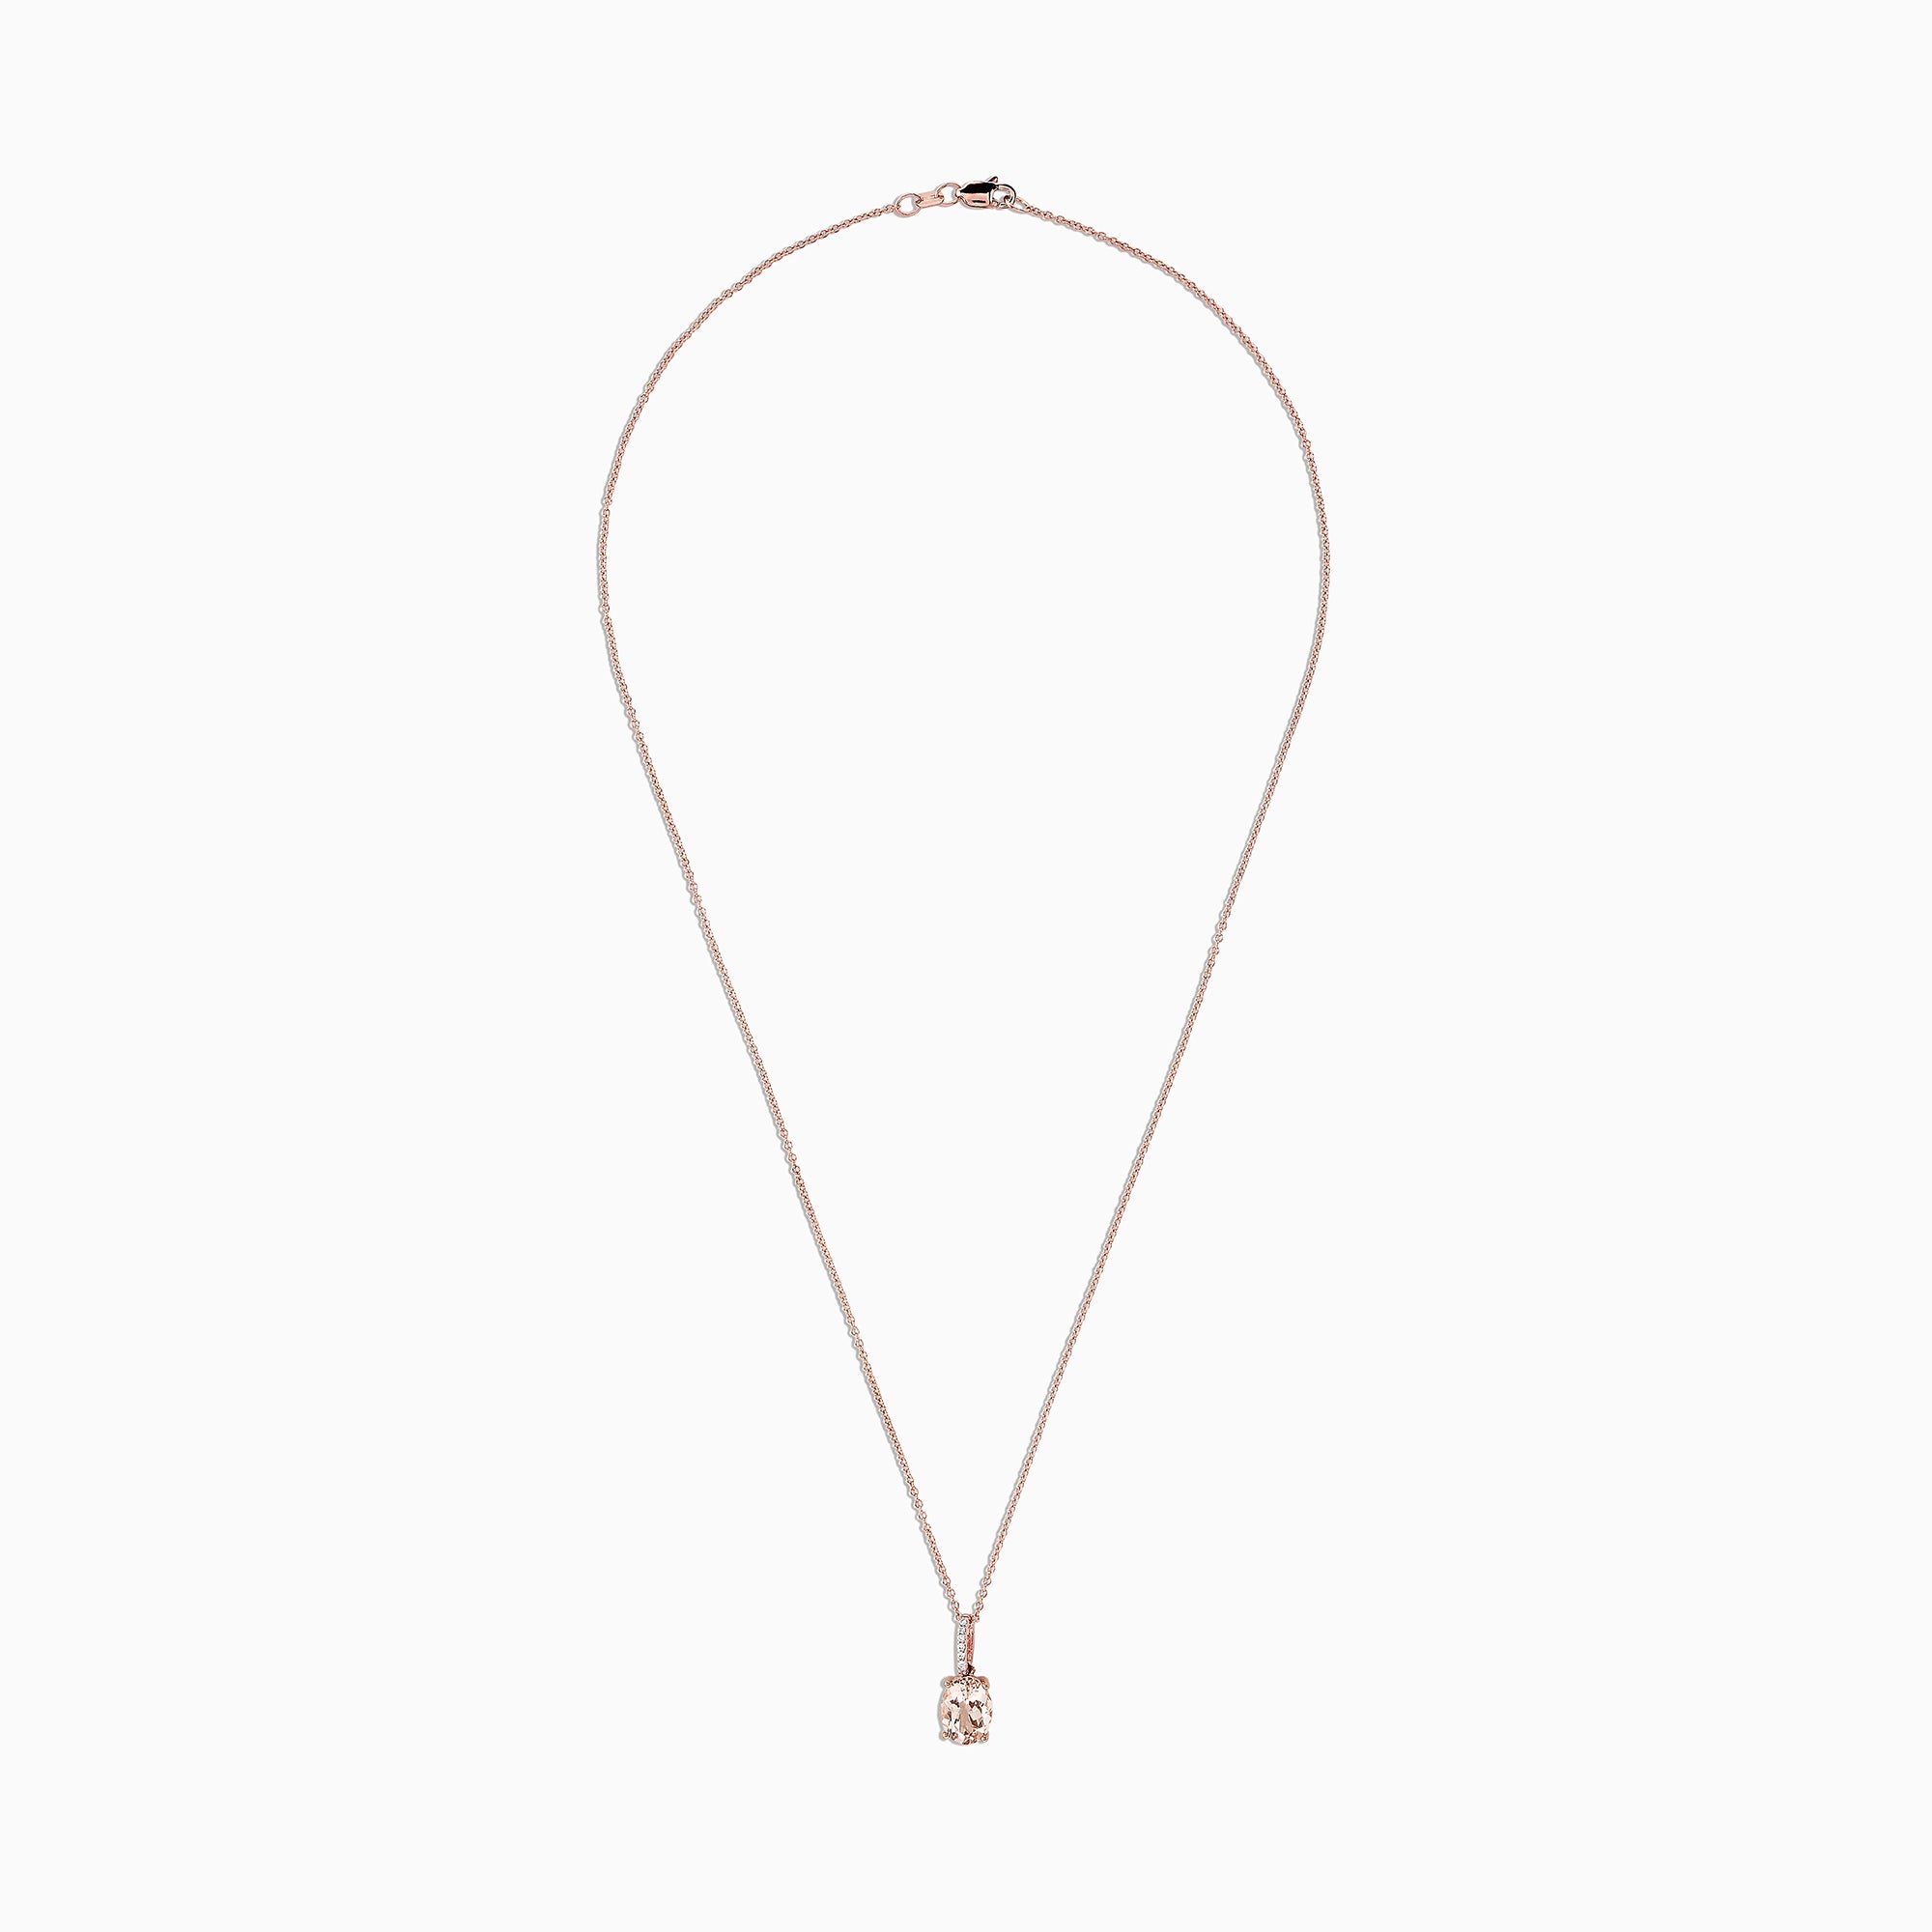 Effy Blush 14K Rose Gold Morganite and Diamond Pendant, 1.74 TCW